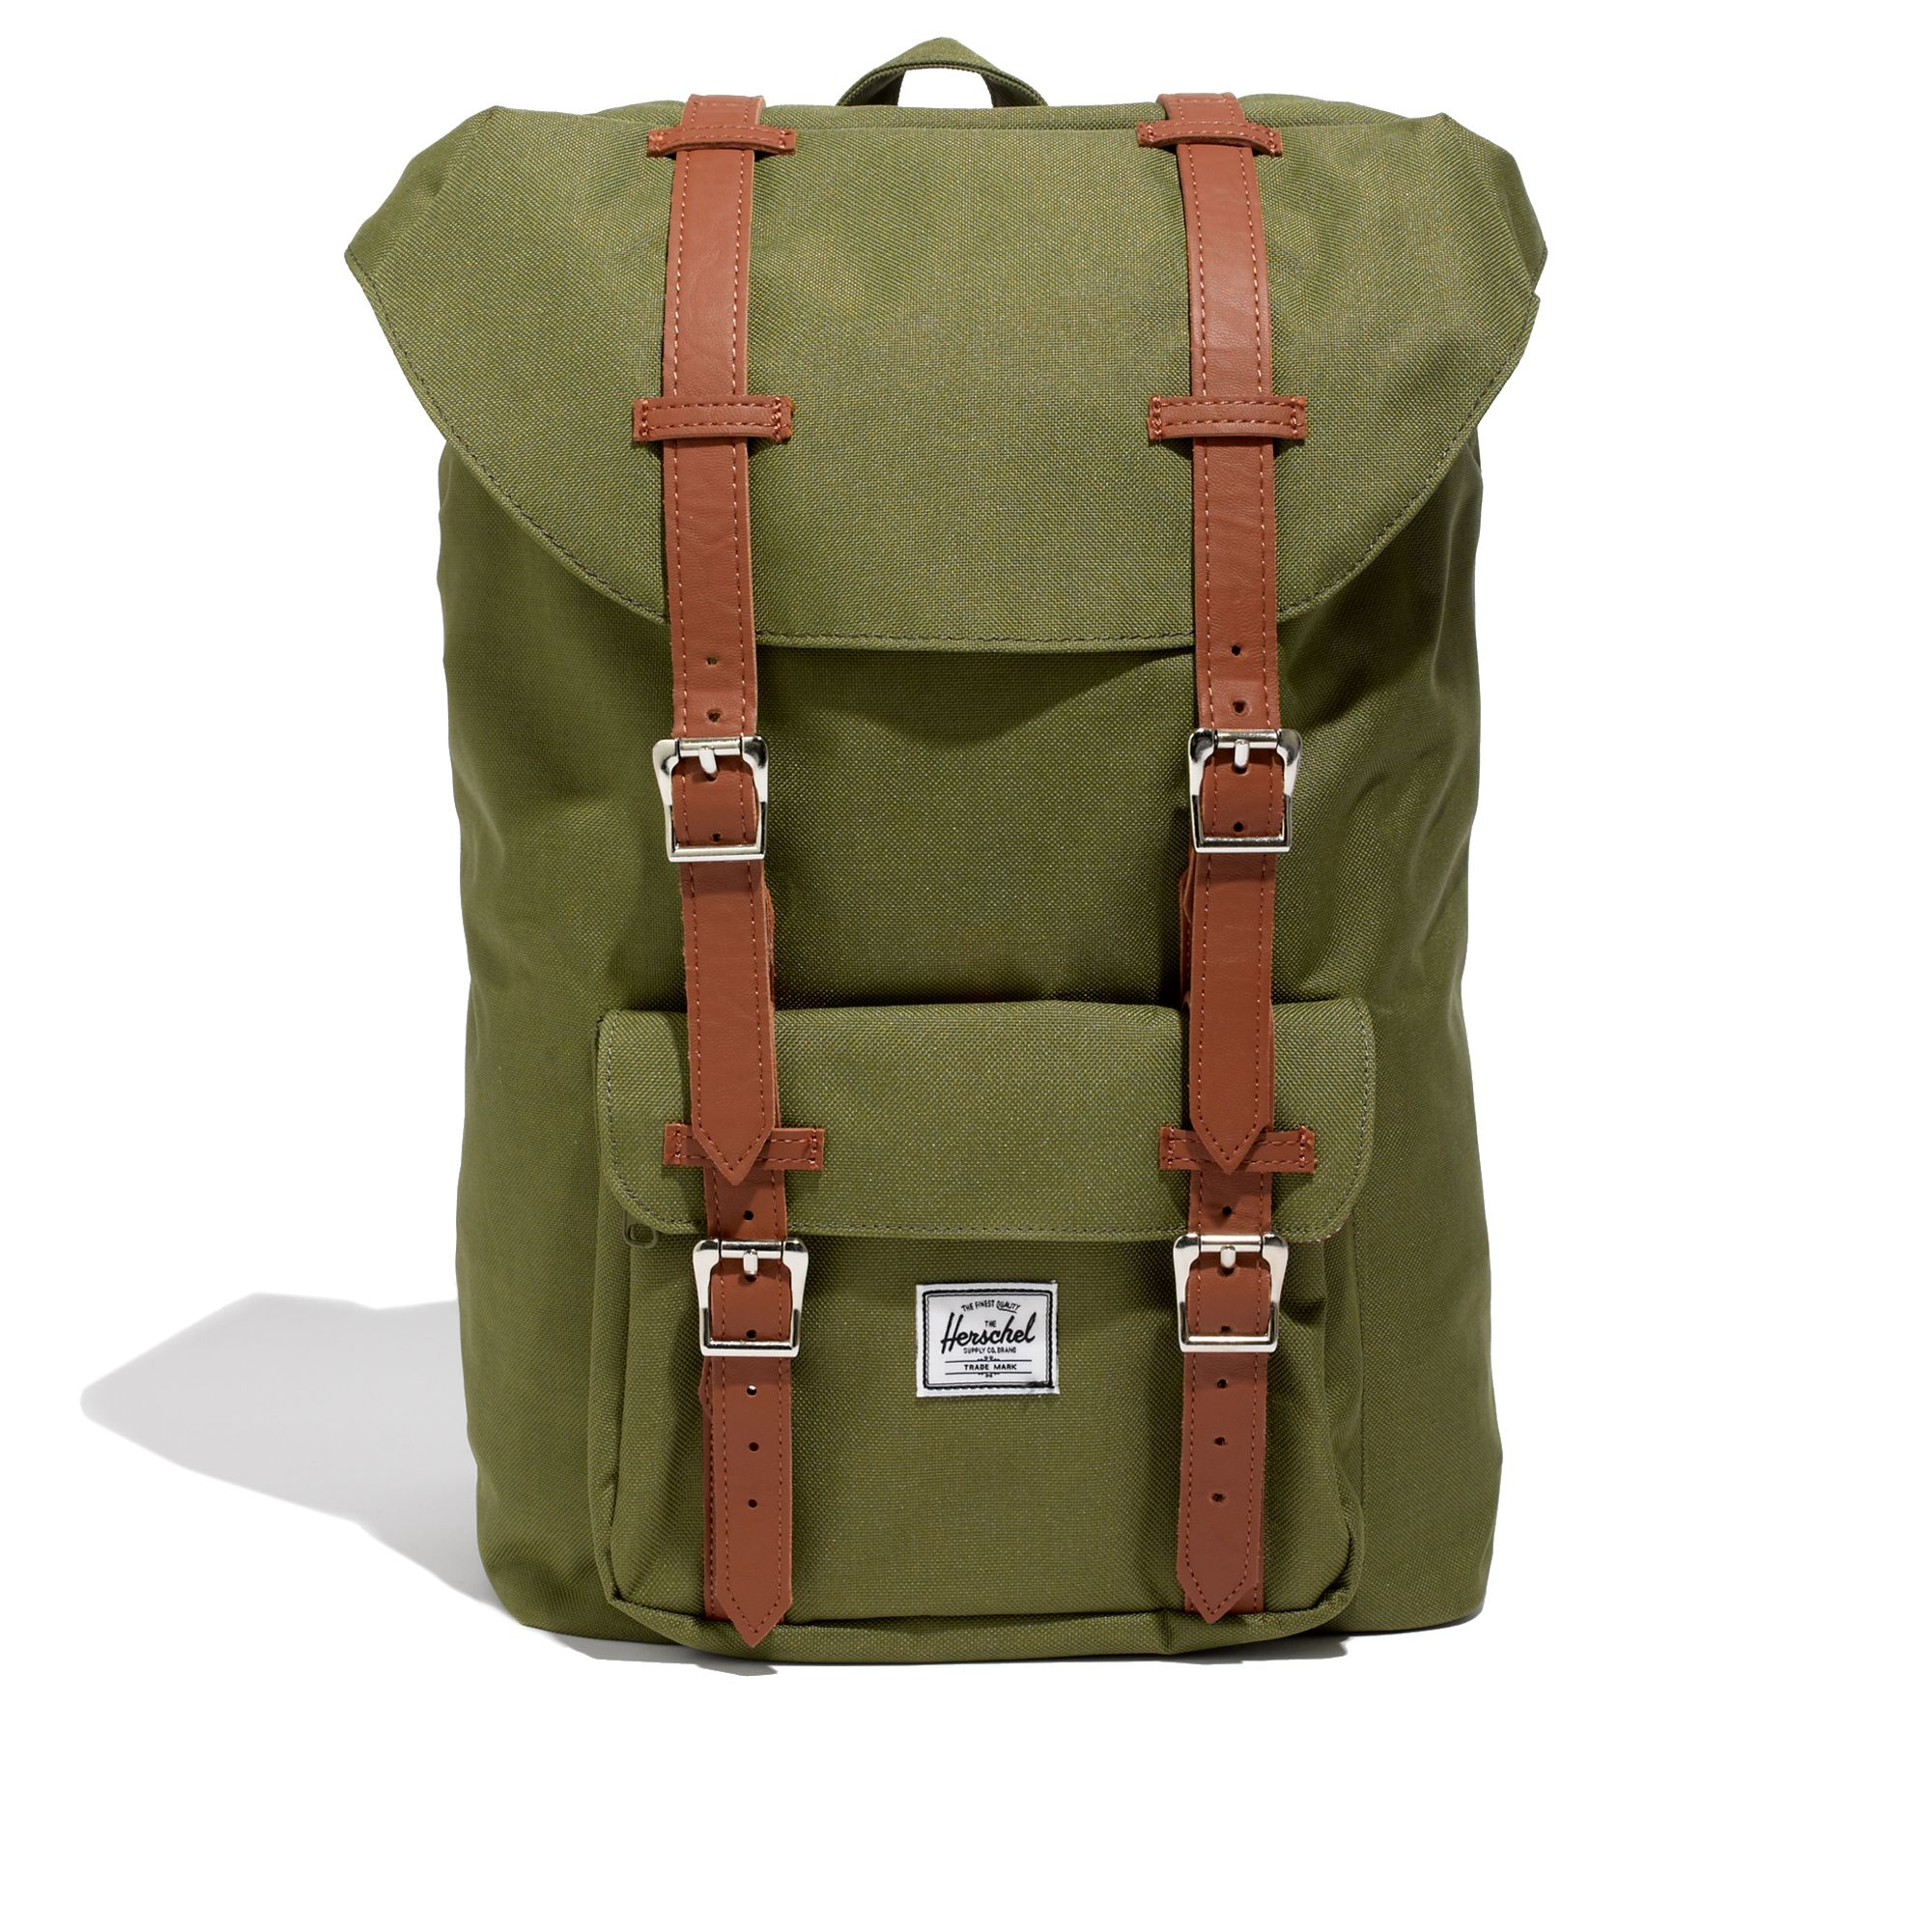 Lyst - Madewell Herschel Supply Coreg Little America Backpack in Green 6046df4373347